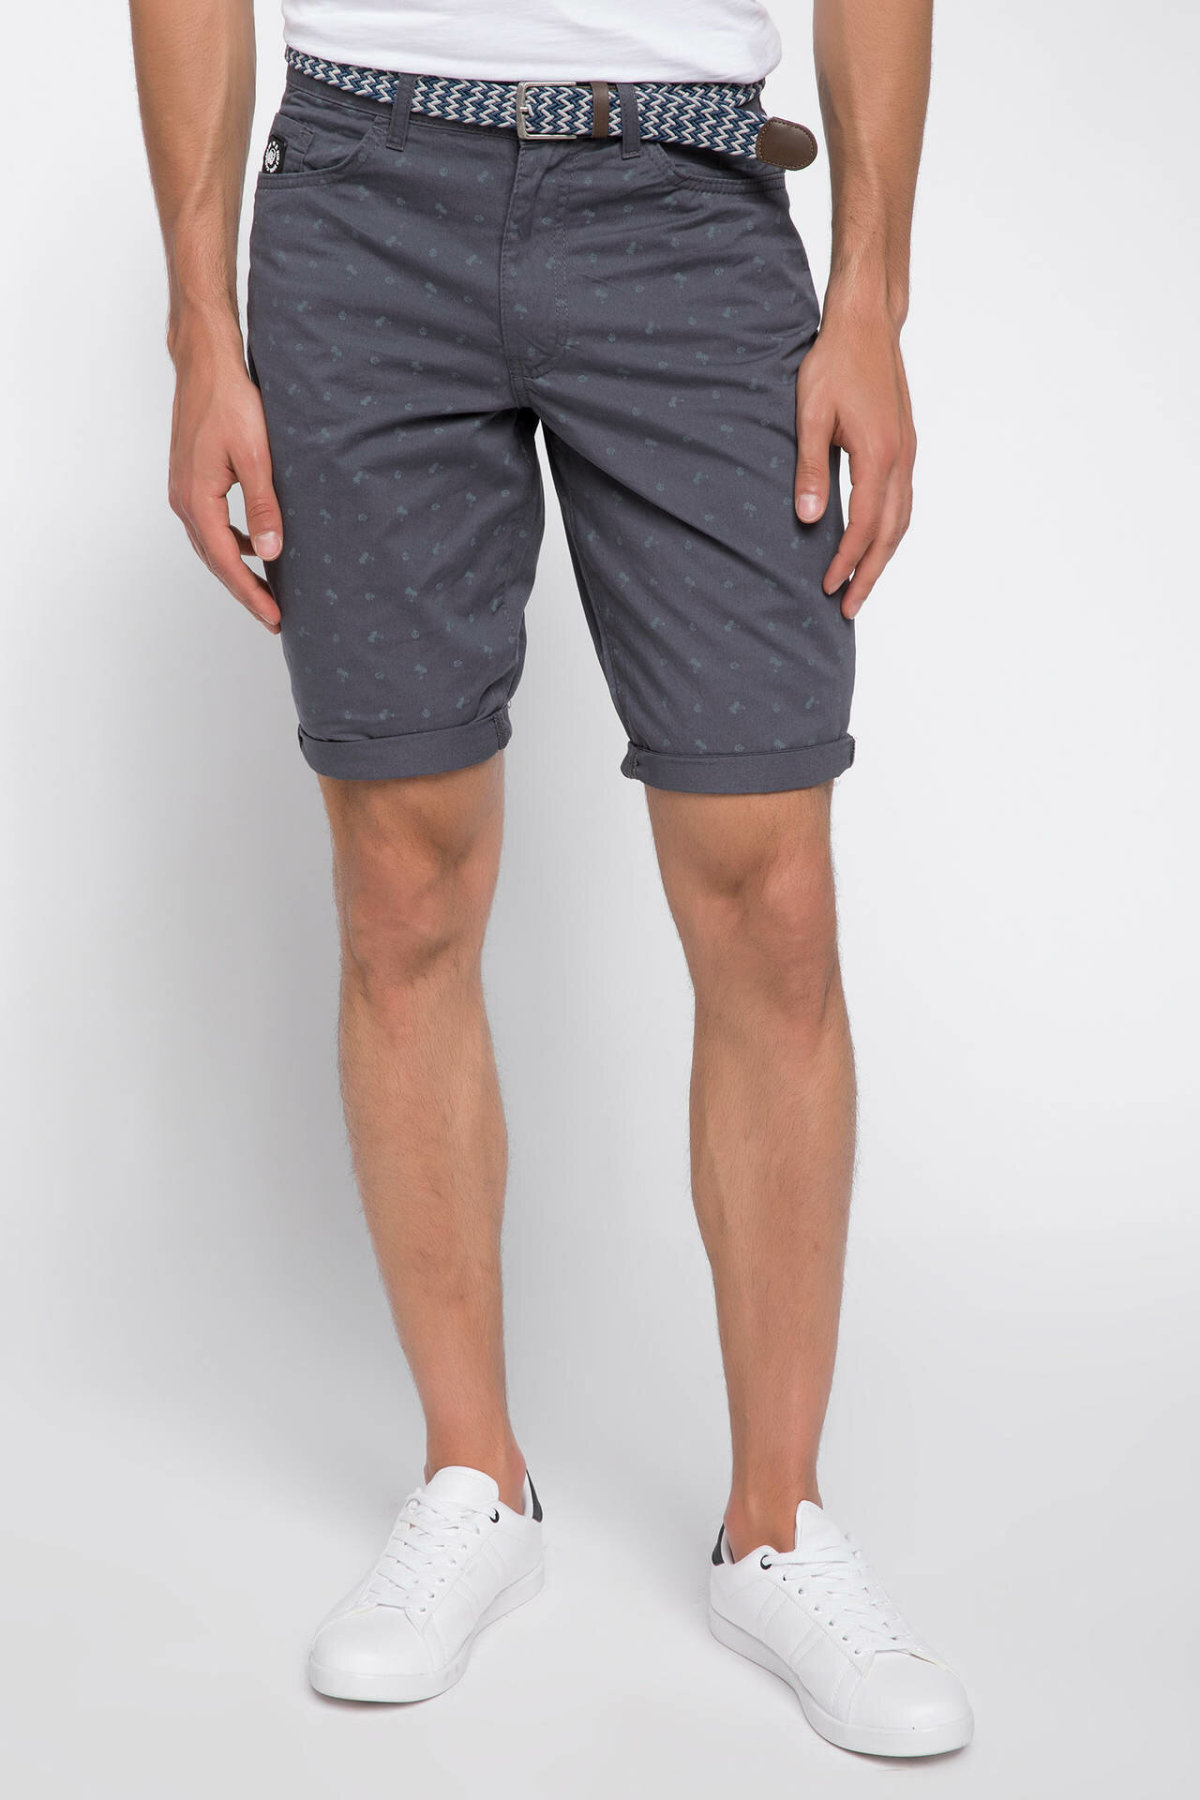 DeFacto Man Fashion Short Pants Male Casual Zipper Shorts High Quality Loose Pants Gray Summer  - I8439AZ18HS